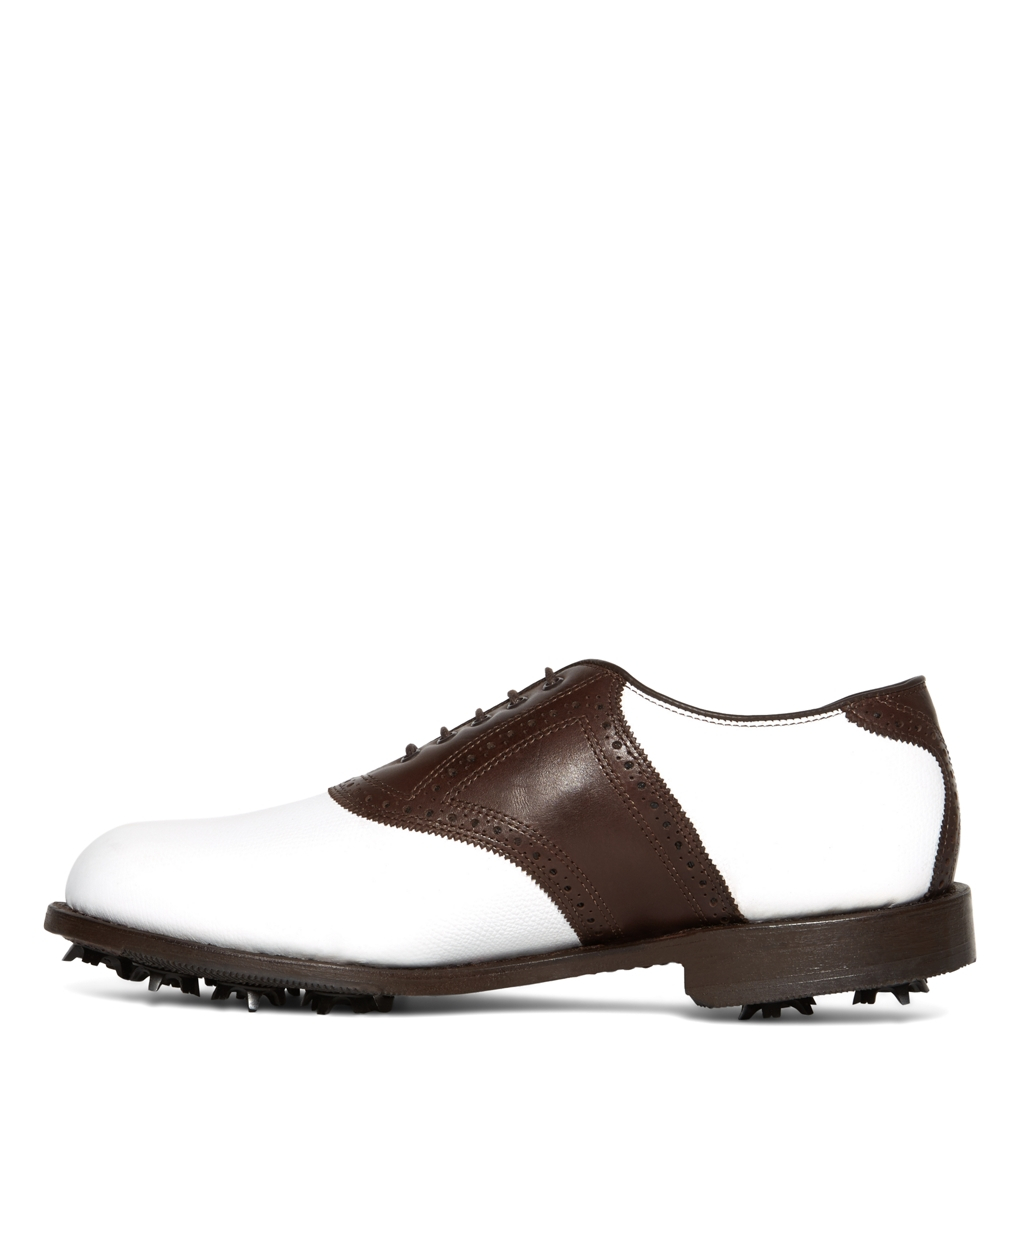 76dbb1a4b5774 Lyst - Brooks Brothers Redan Golf Shoes in Brown for Men